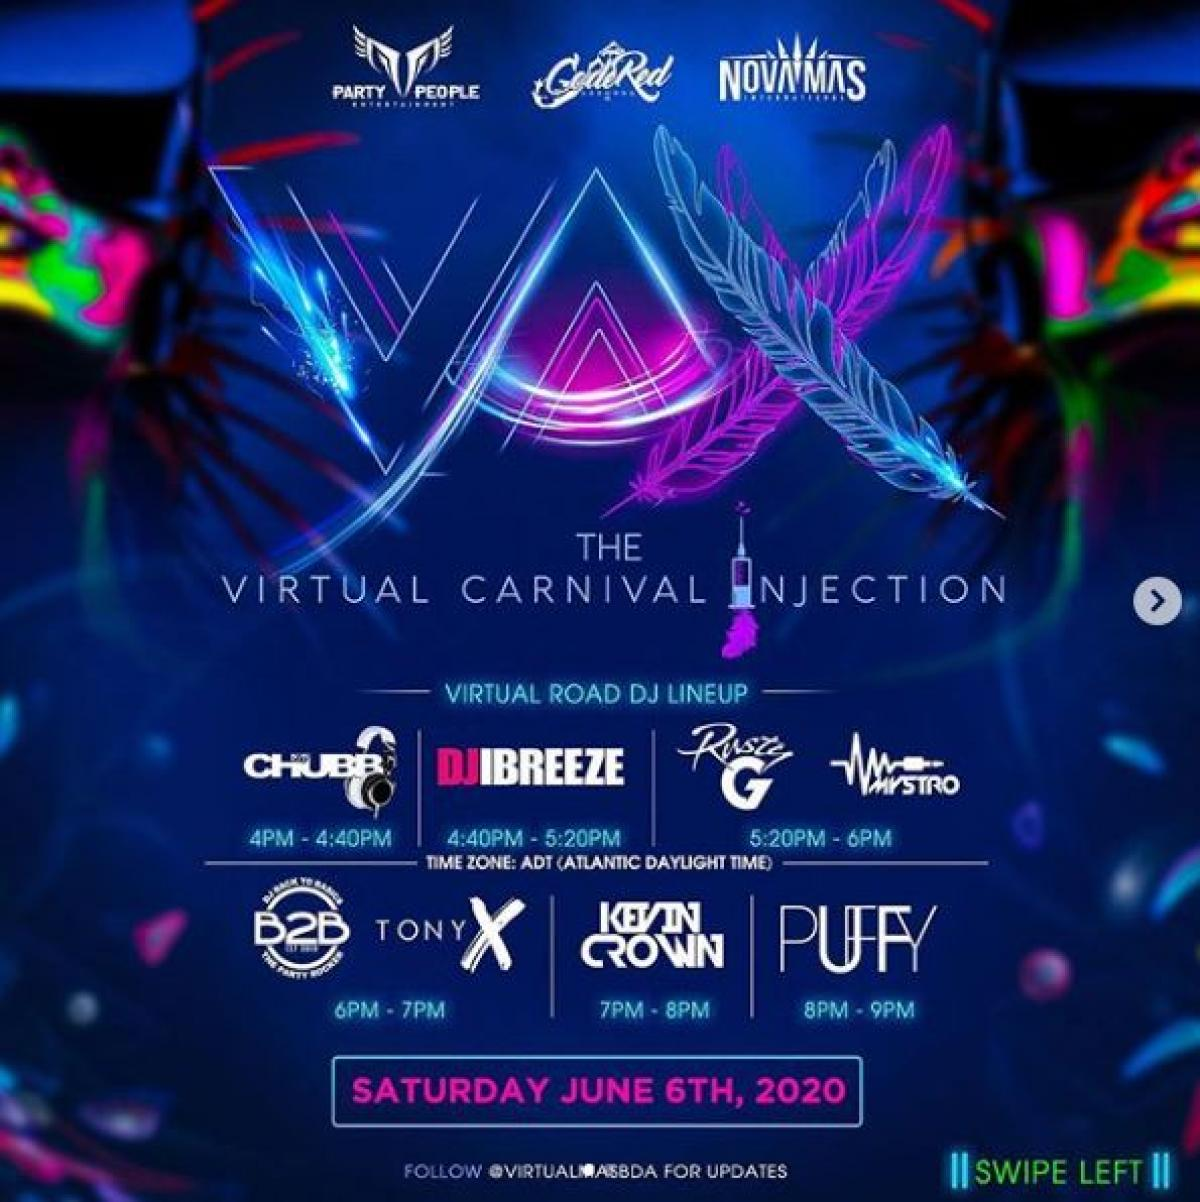 Virtual Carnival Injection flyer or graphic.